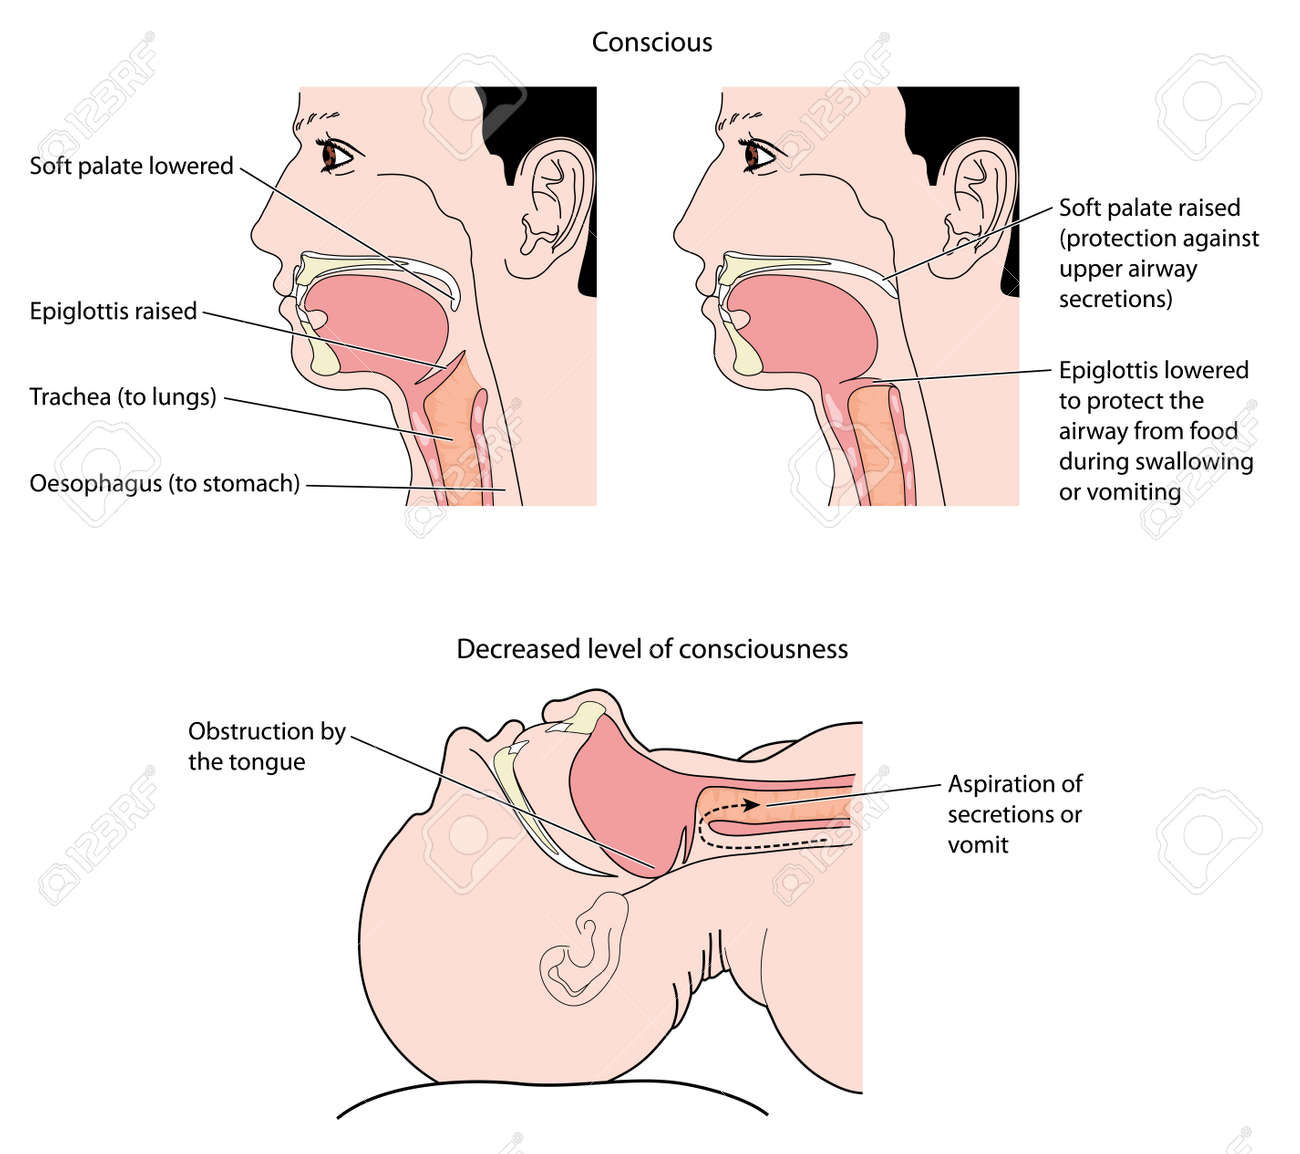 Cross Section Of The Mouth And Throat, Showing Action Of The ...